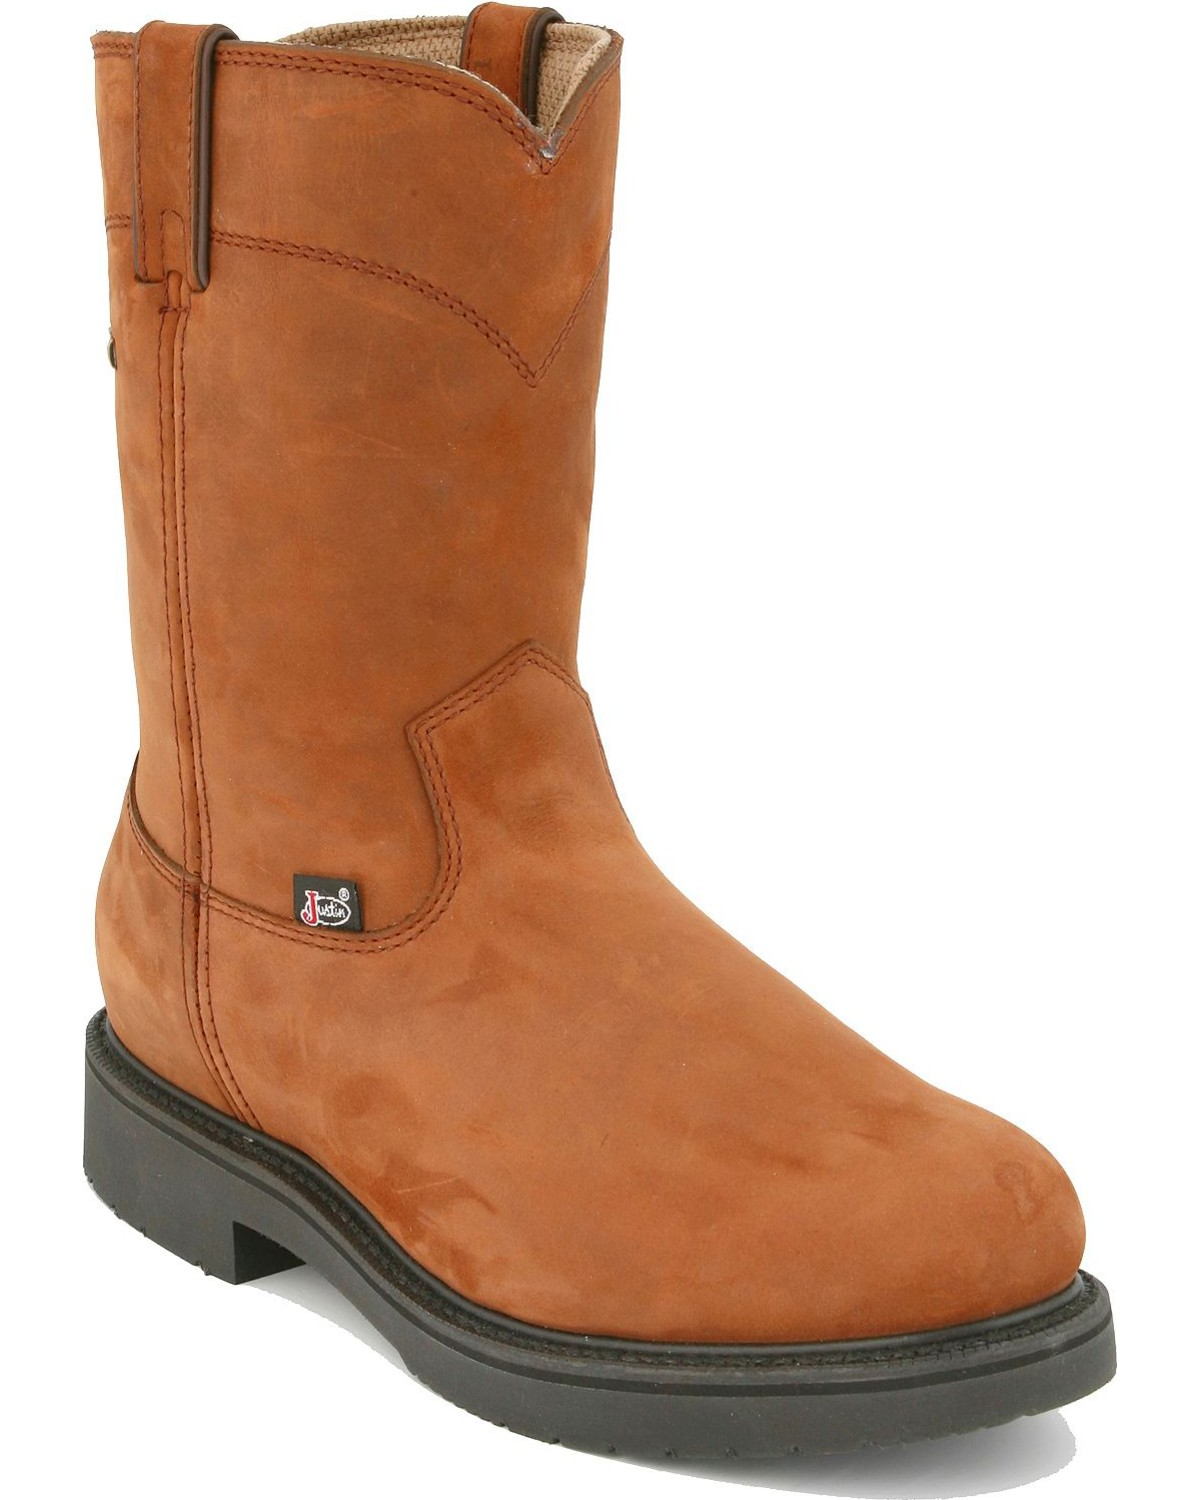 Justin Men S Pull On Waterproof Work Boots Boot Barn